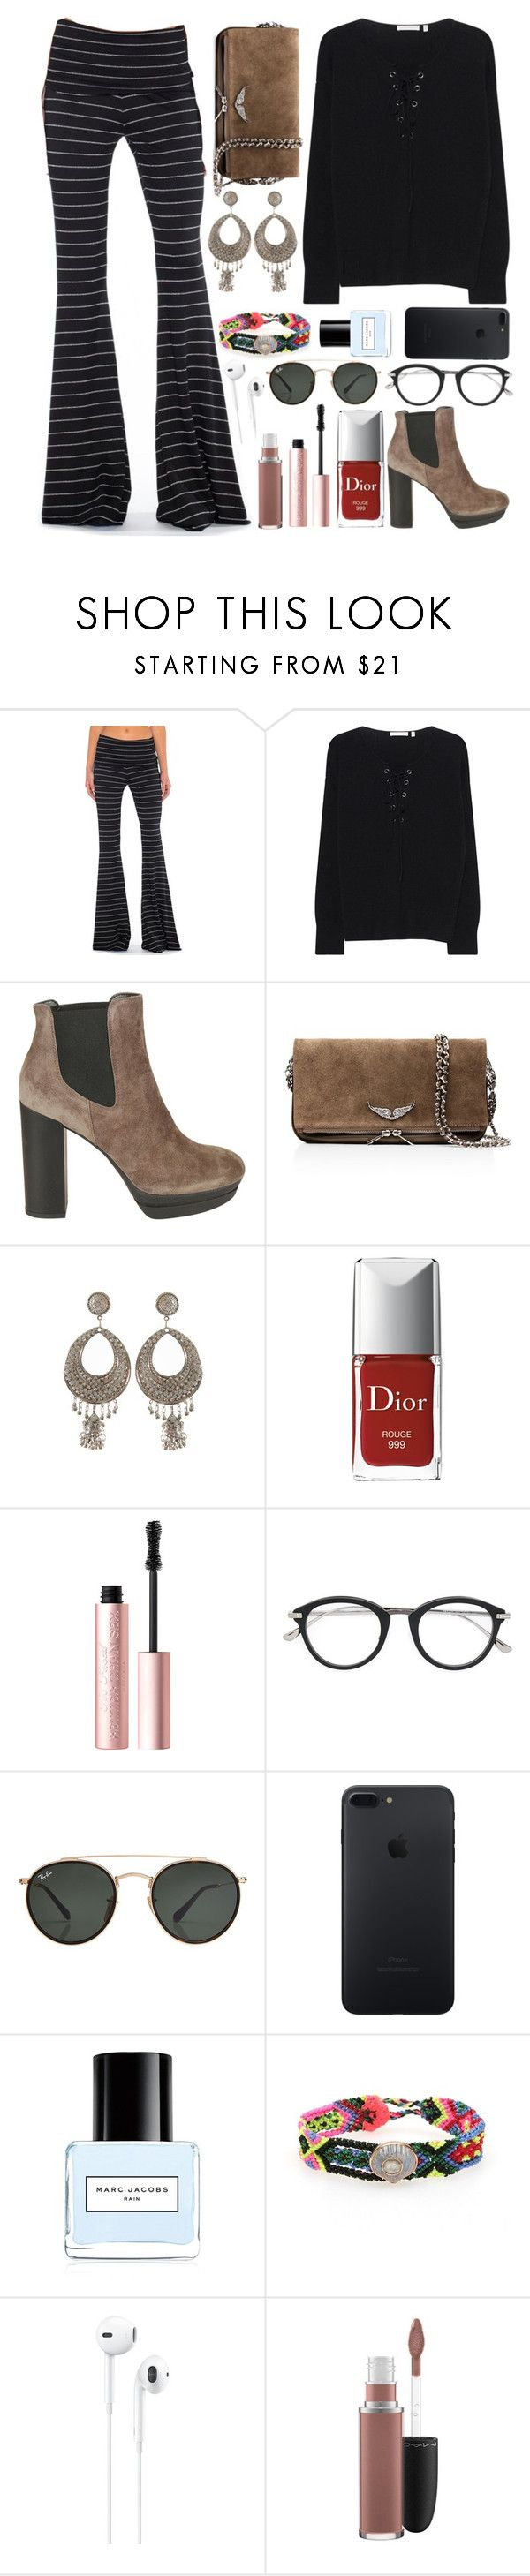 """""""1. mad"""" by datumacias ❤ liked on Polyvore featuring Saint Grace, The Mercer N.Y., Hogan, Zadig & Voltaire, Christian Dior, Too Faced Cosmetics, Tom Ford, Ray-Ban, Marc Jacobs and Dezso by Sara Beltrán"""